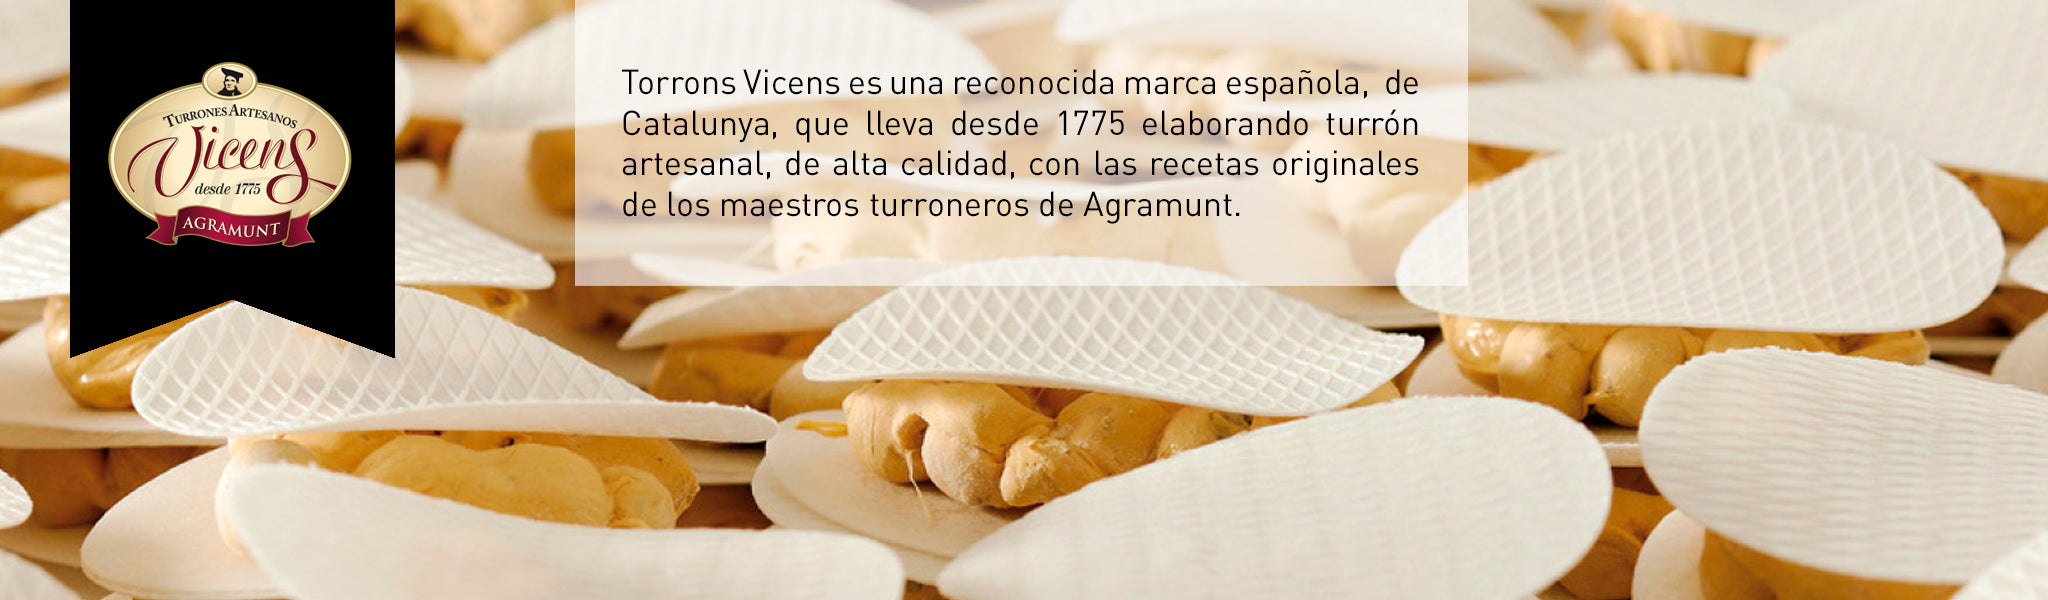 Torrons Vicens